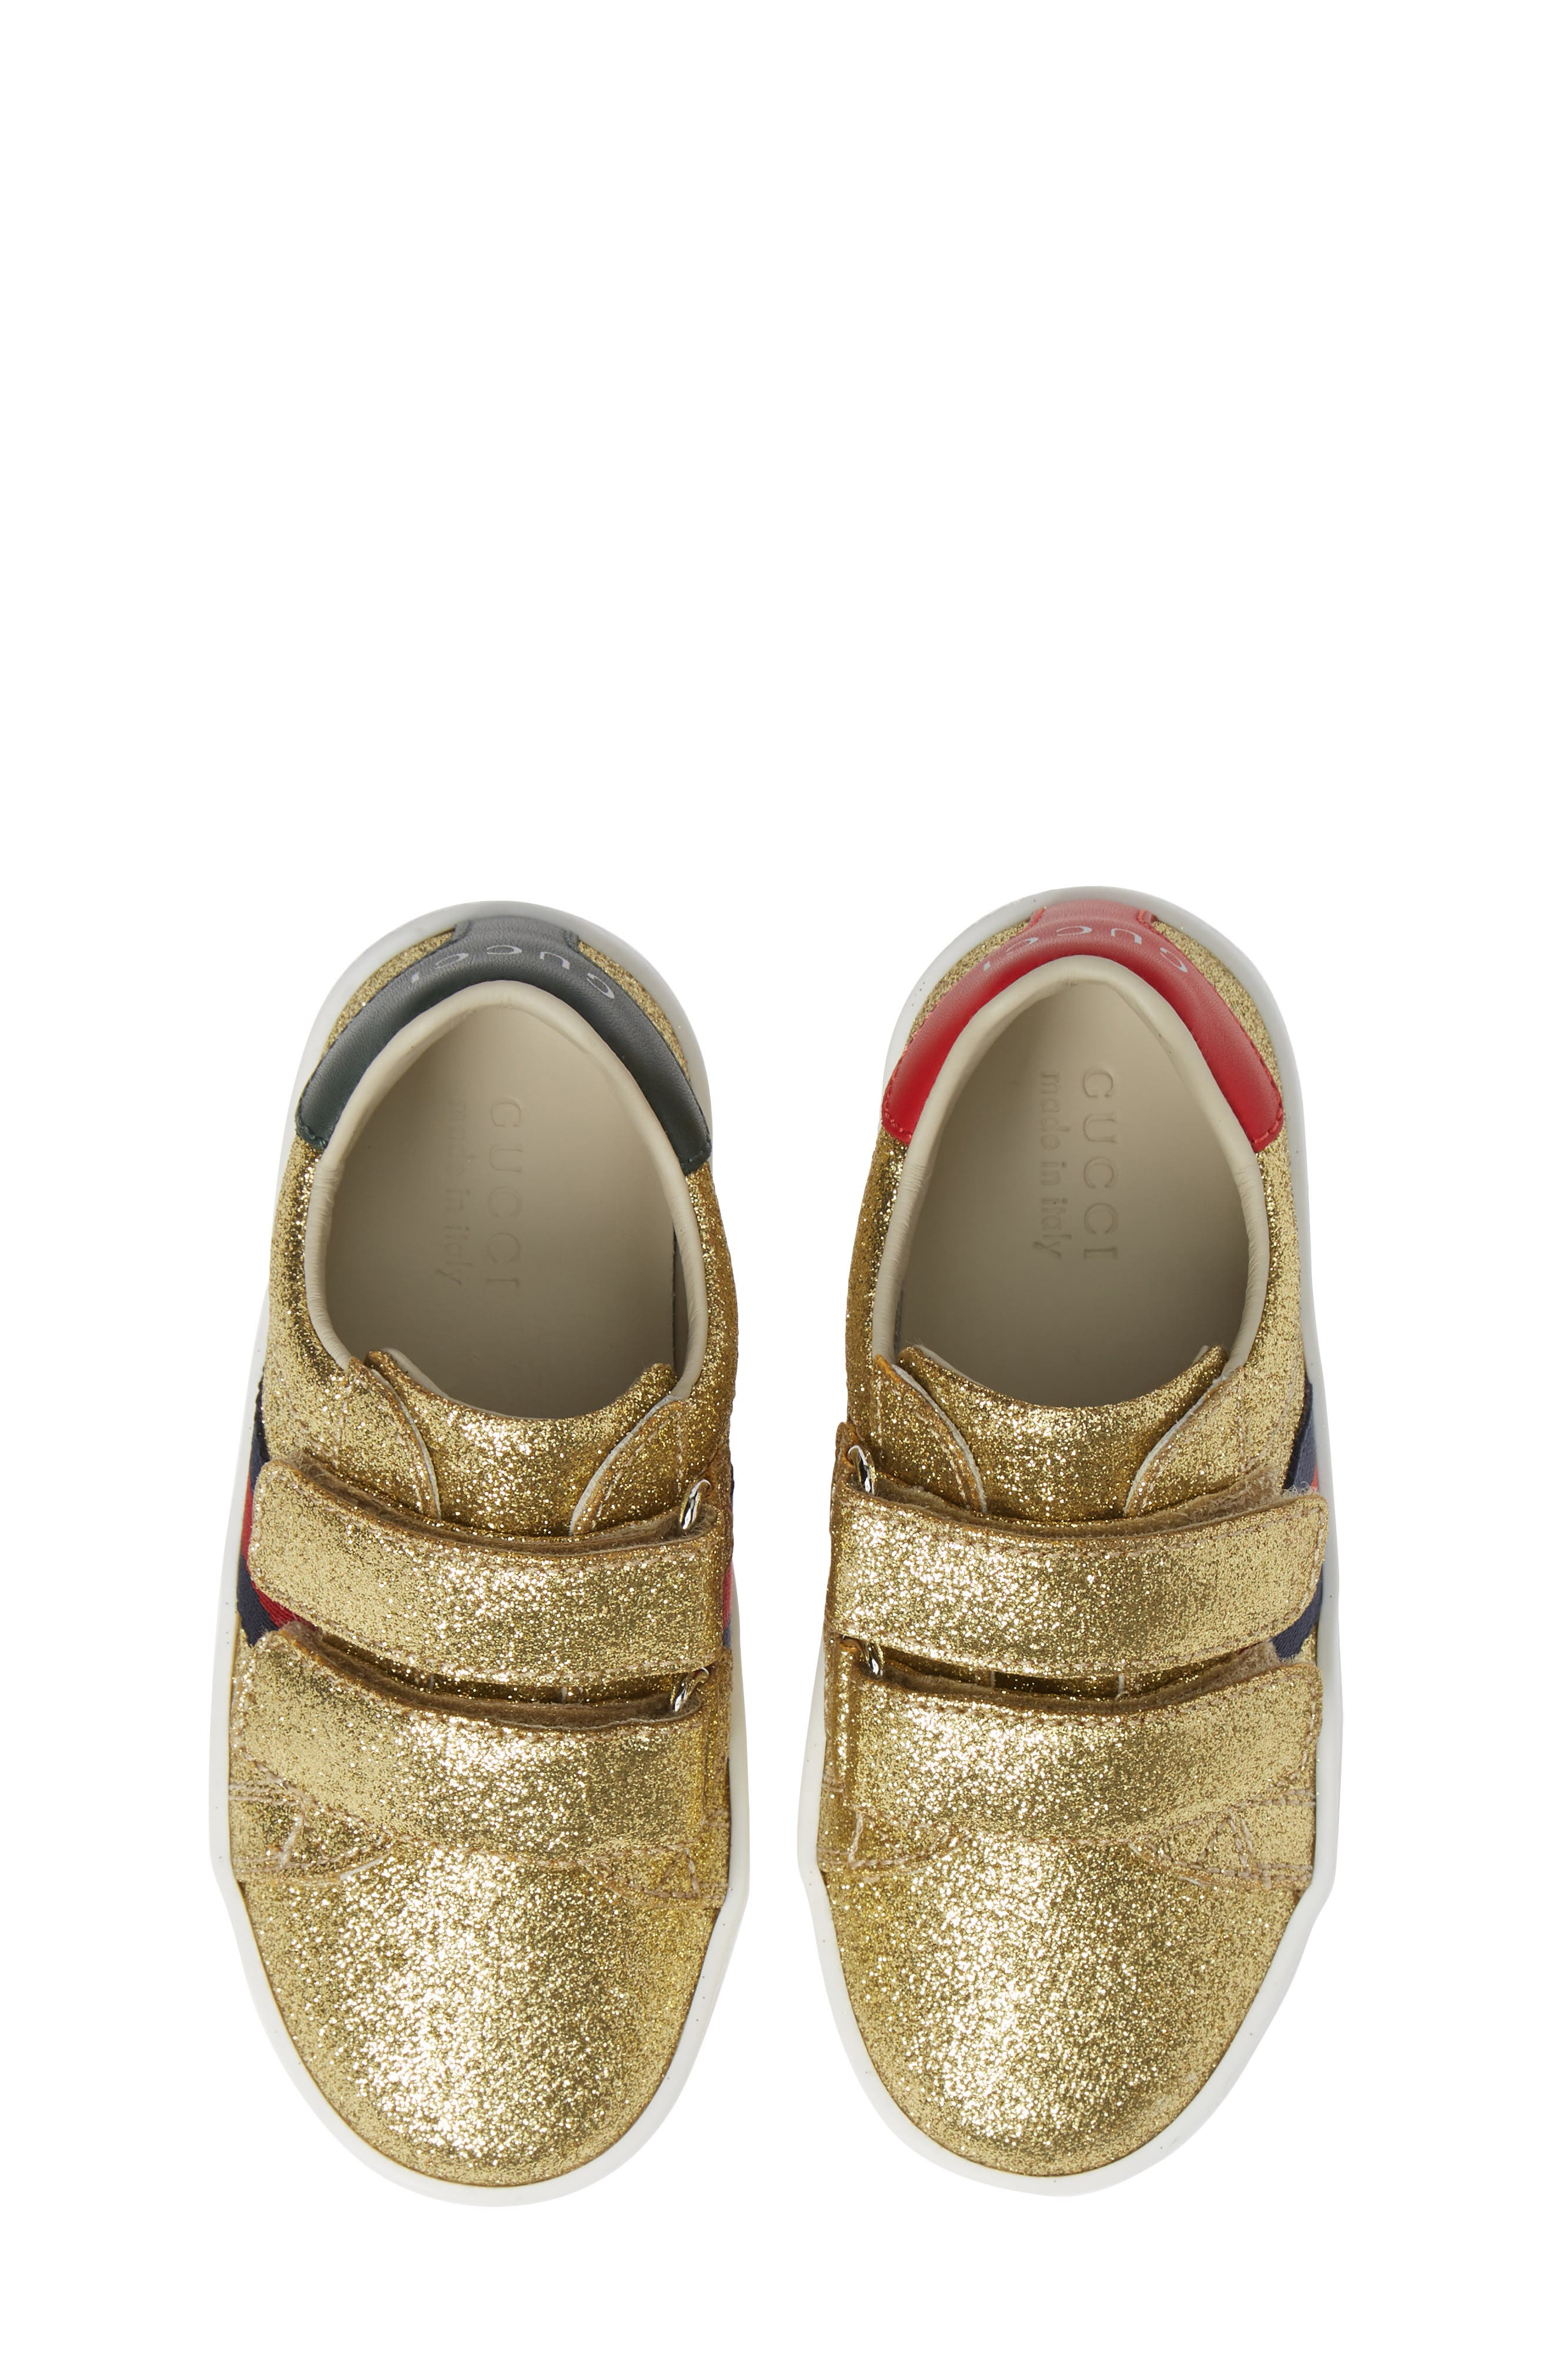 00e8549508c Toddler Girls  Gucci Shoes (Sizes 7.5-12)